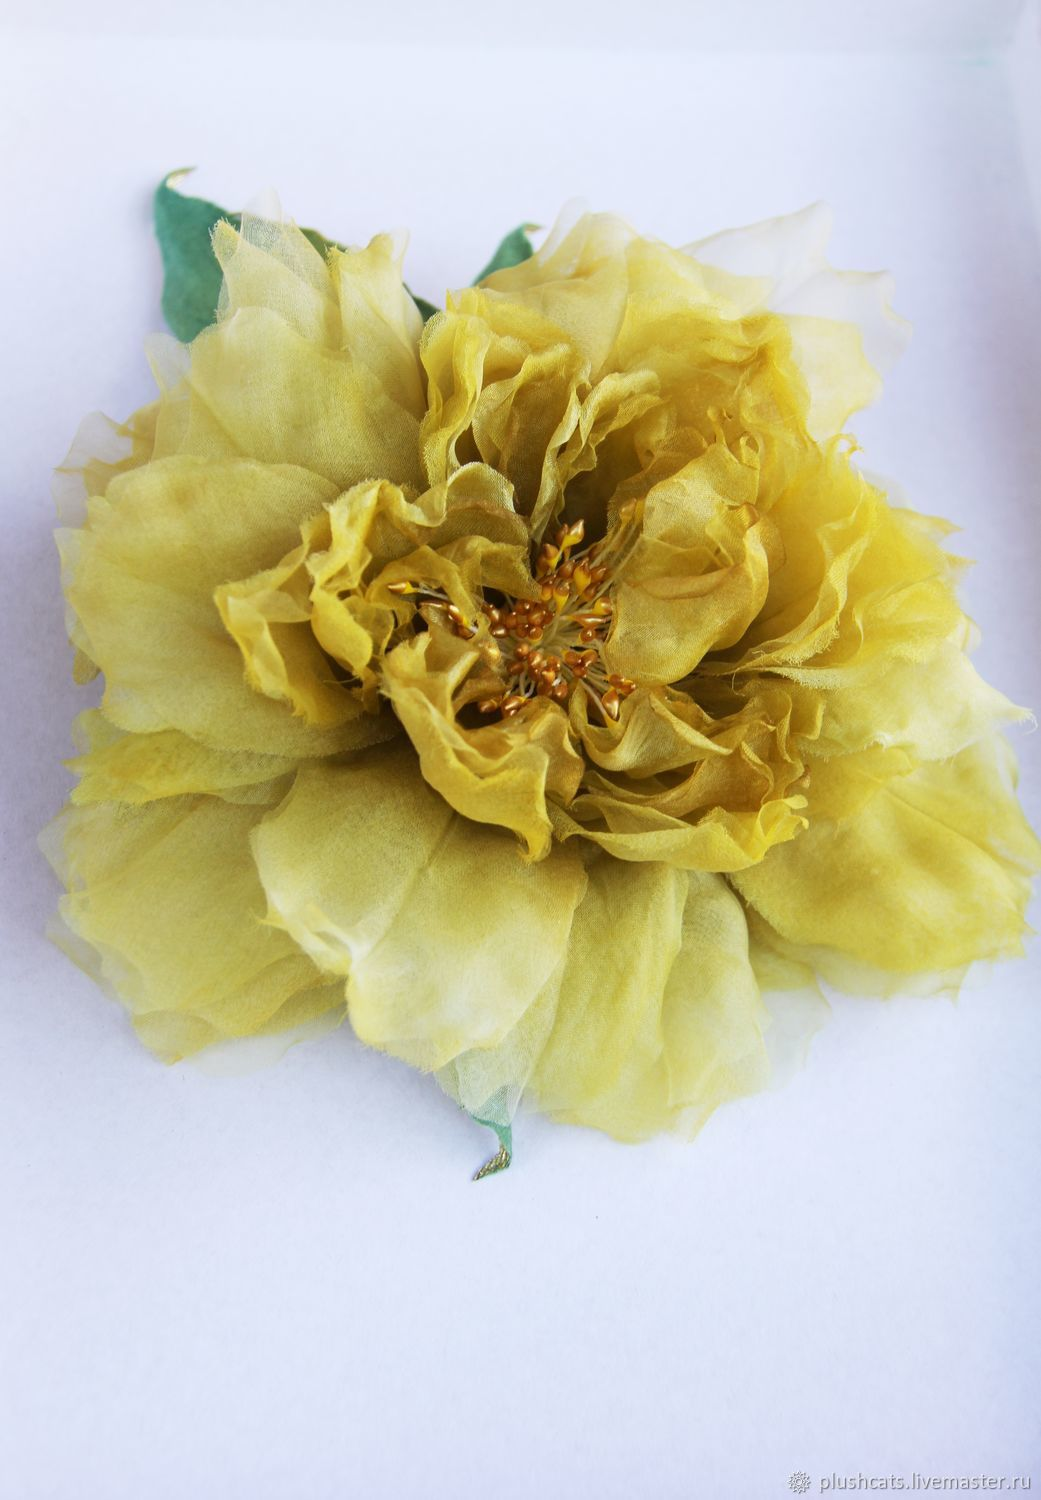 Rose 'Mustard' from chiffon, Brooches, Moscow,  Фото №1